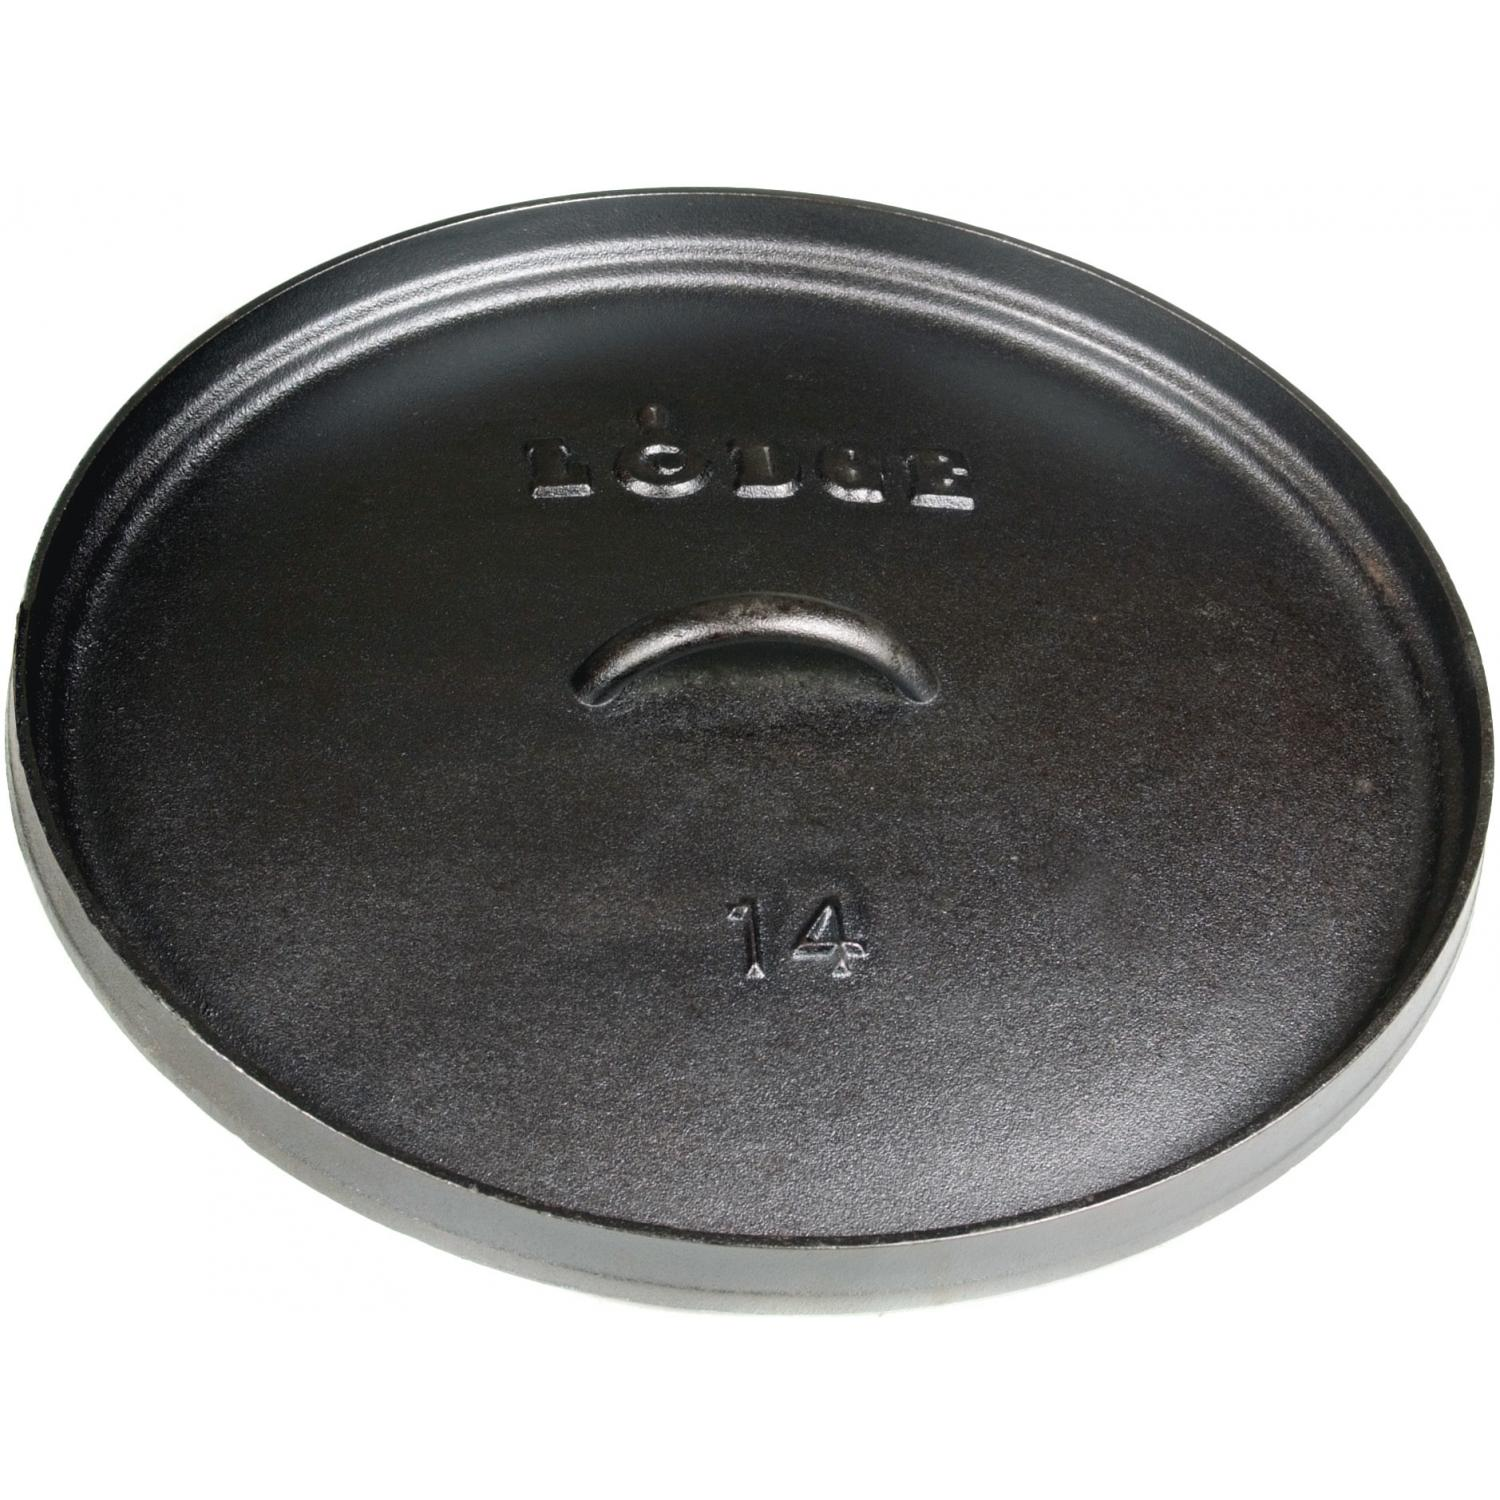 Lodge Lids 14 Inch Seasoned For Camping Dutch Oven Cast Iron Lid - L14CL3